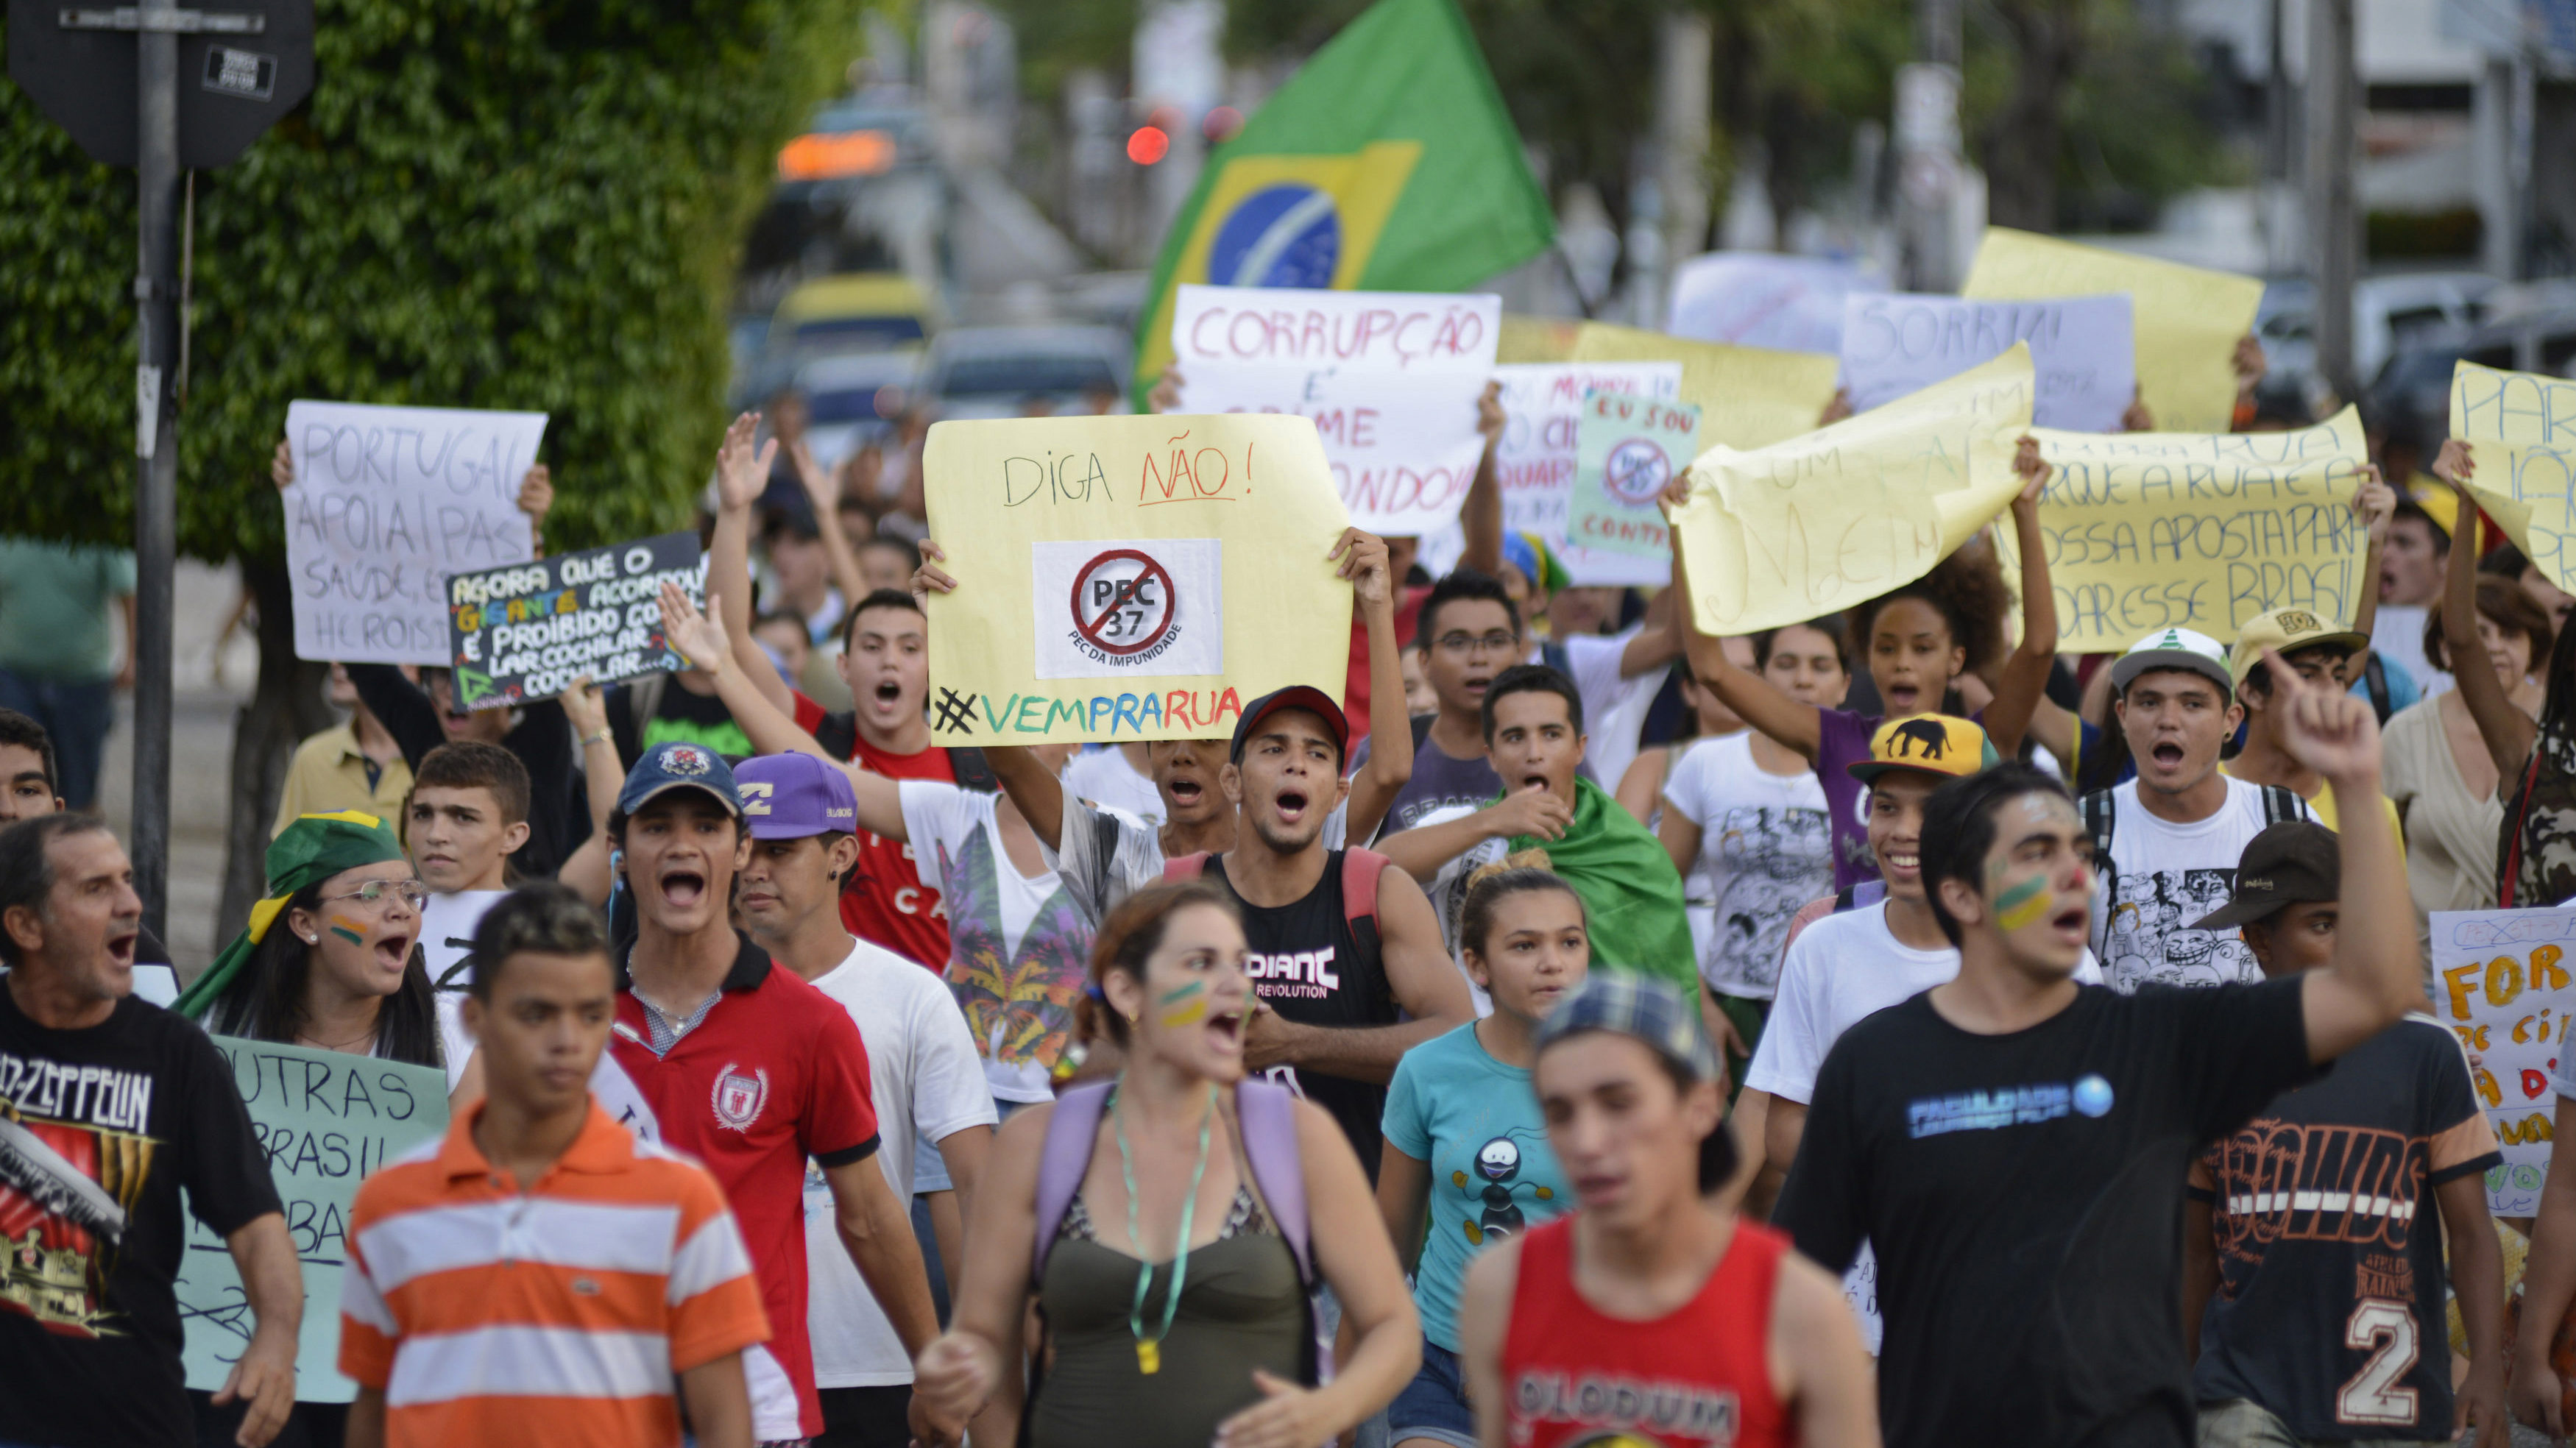 Demonstrators participate in a protest march in Fortaleza, June 22, 2013. Demonstrators in Brazil gathered this week to continue the growing protest that is tapping into widespread anger at poor public services, mainly health, education and transport. REUTERS/Davi Pinheiro (BRAZIL - Tags: CIVIL UNREST BUSINESS EMPLOYMENT POLITICS)